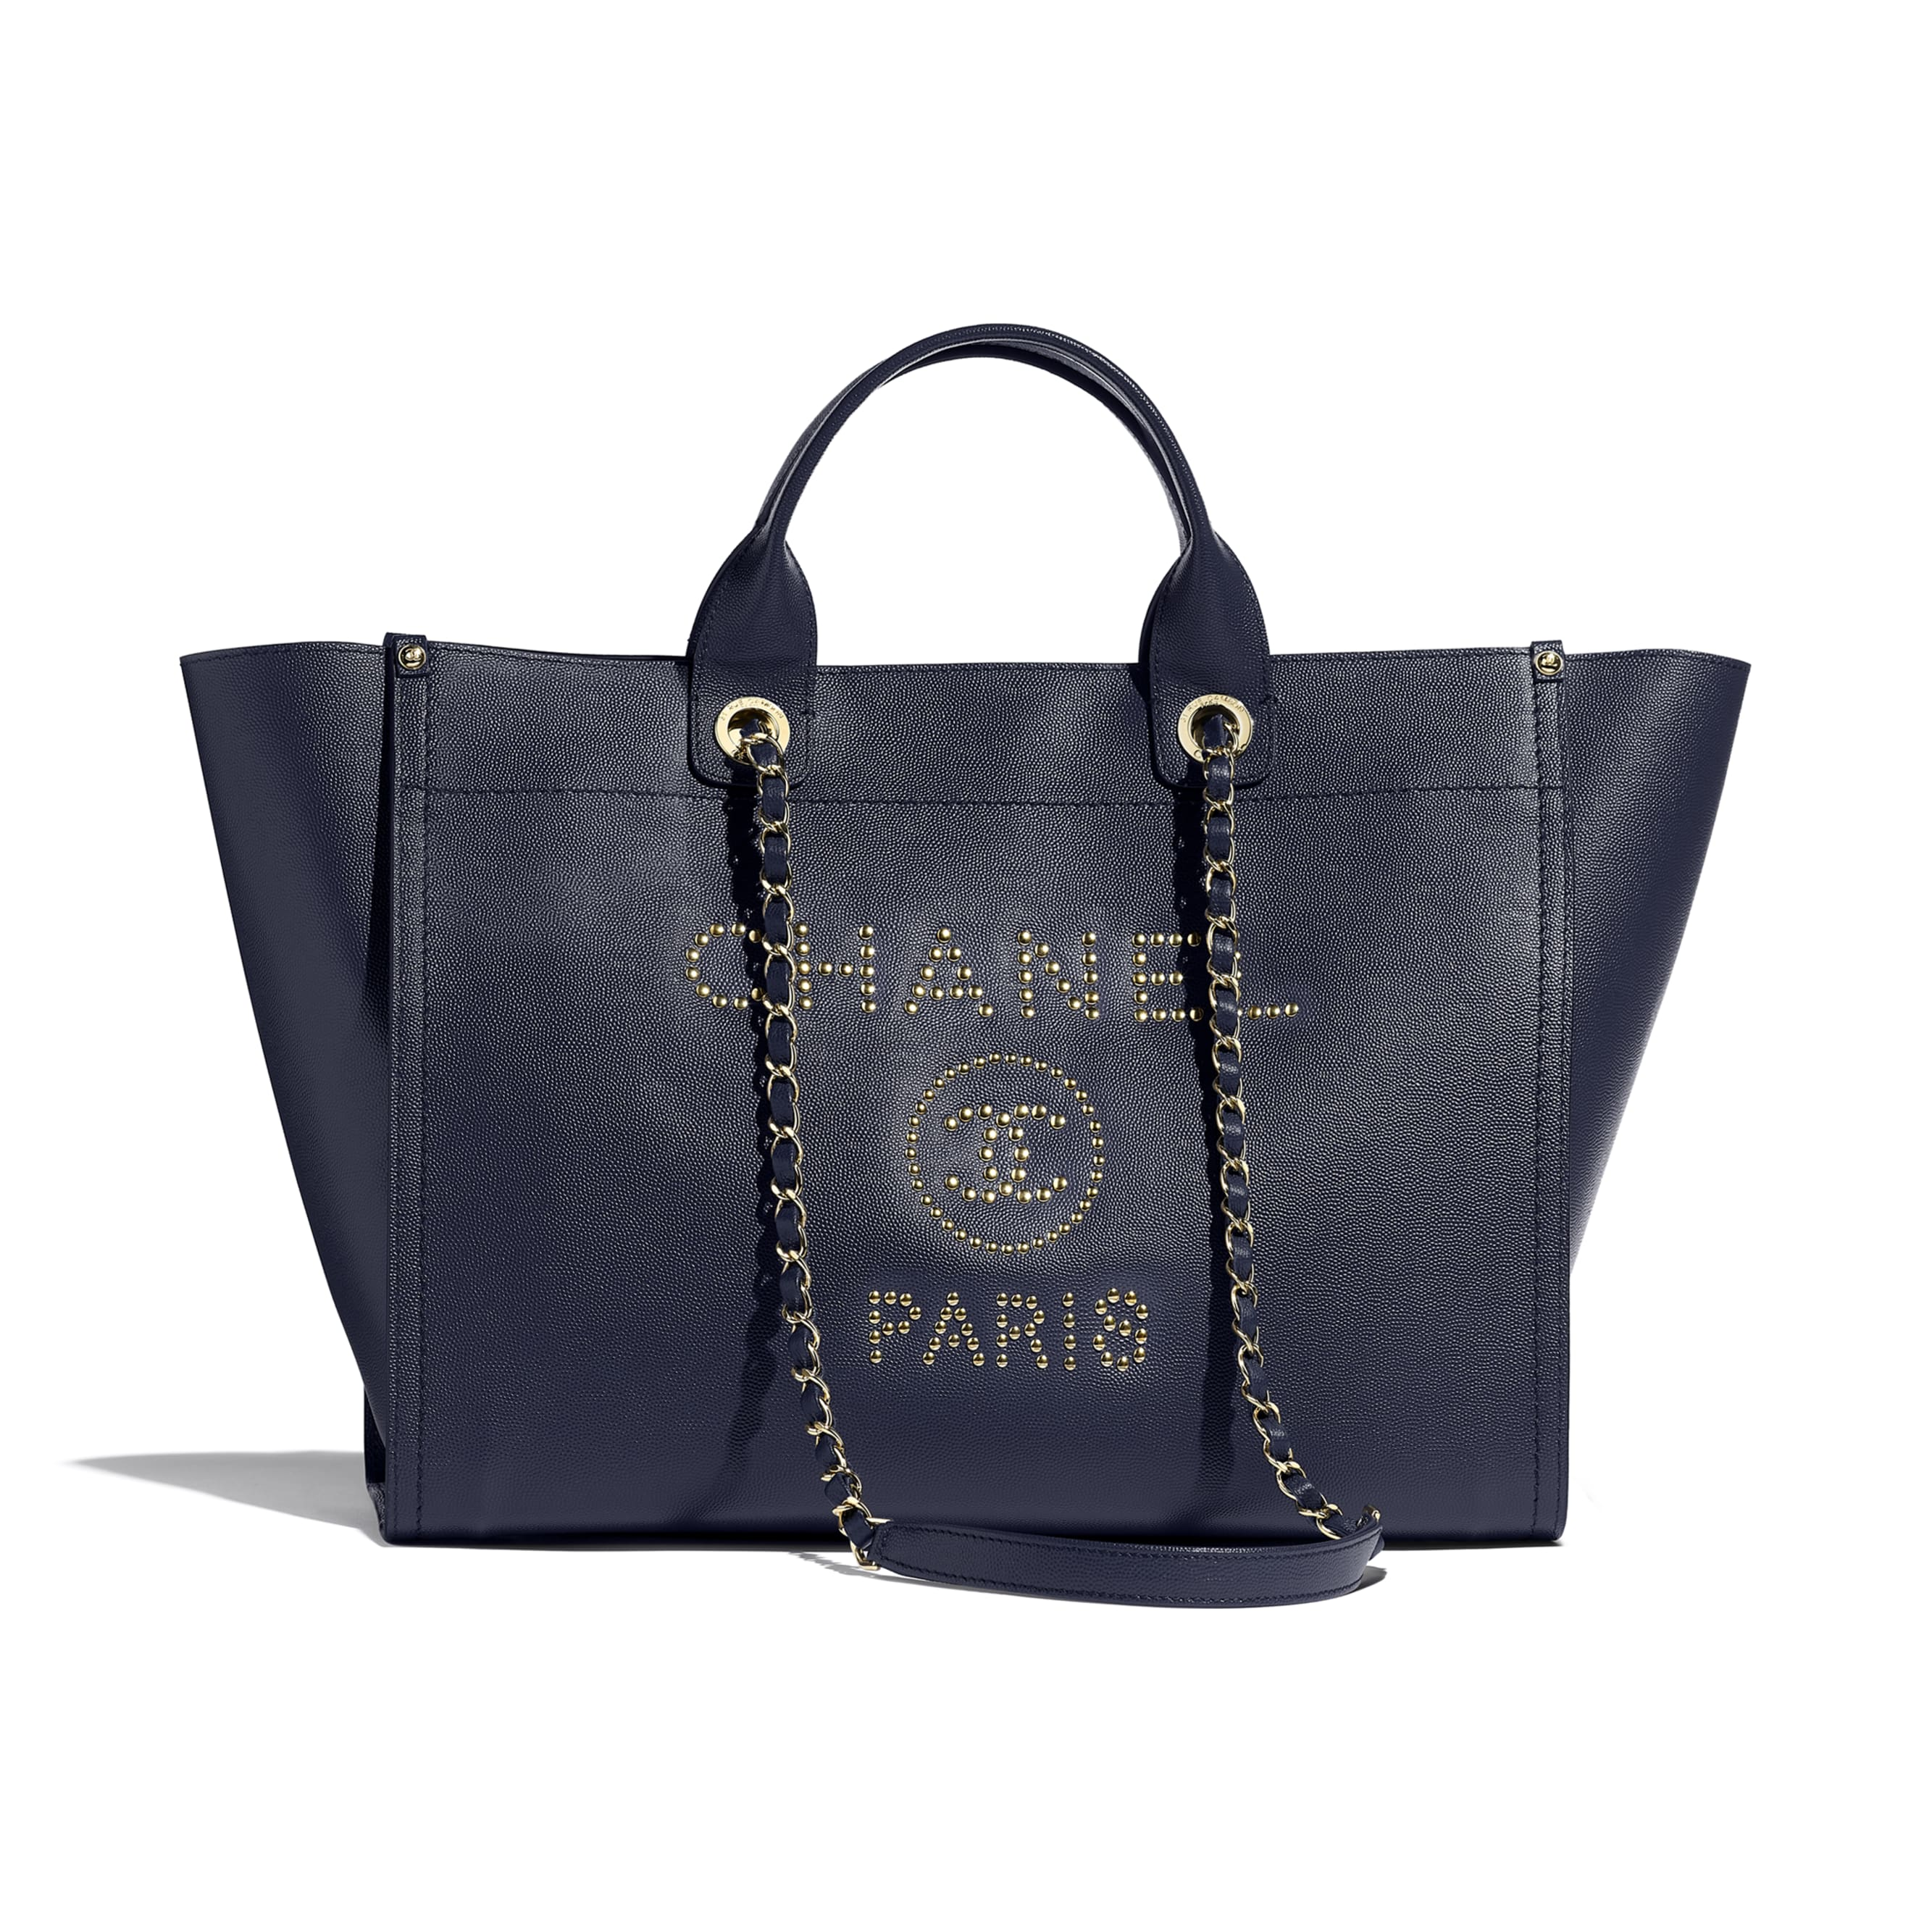 Large Shopping Bag - Navy Blue - Grained Calfskin & Gold-Tone Metal - CHANEL - Default view - see standard sized version